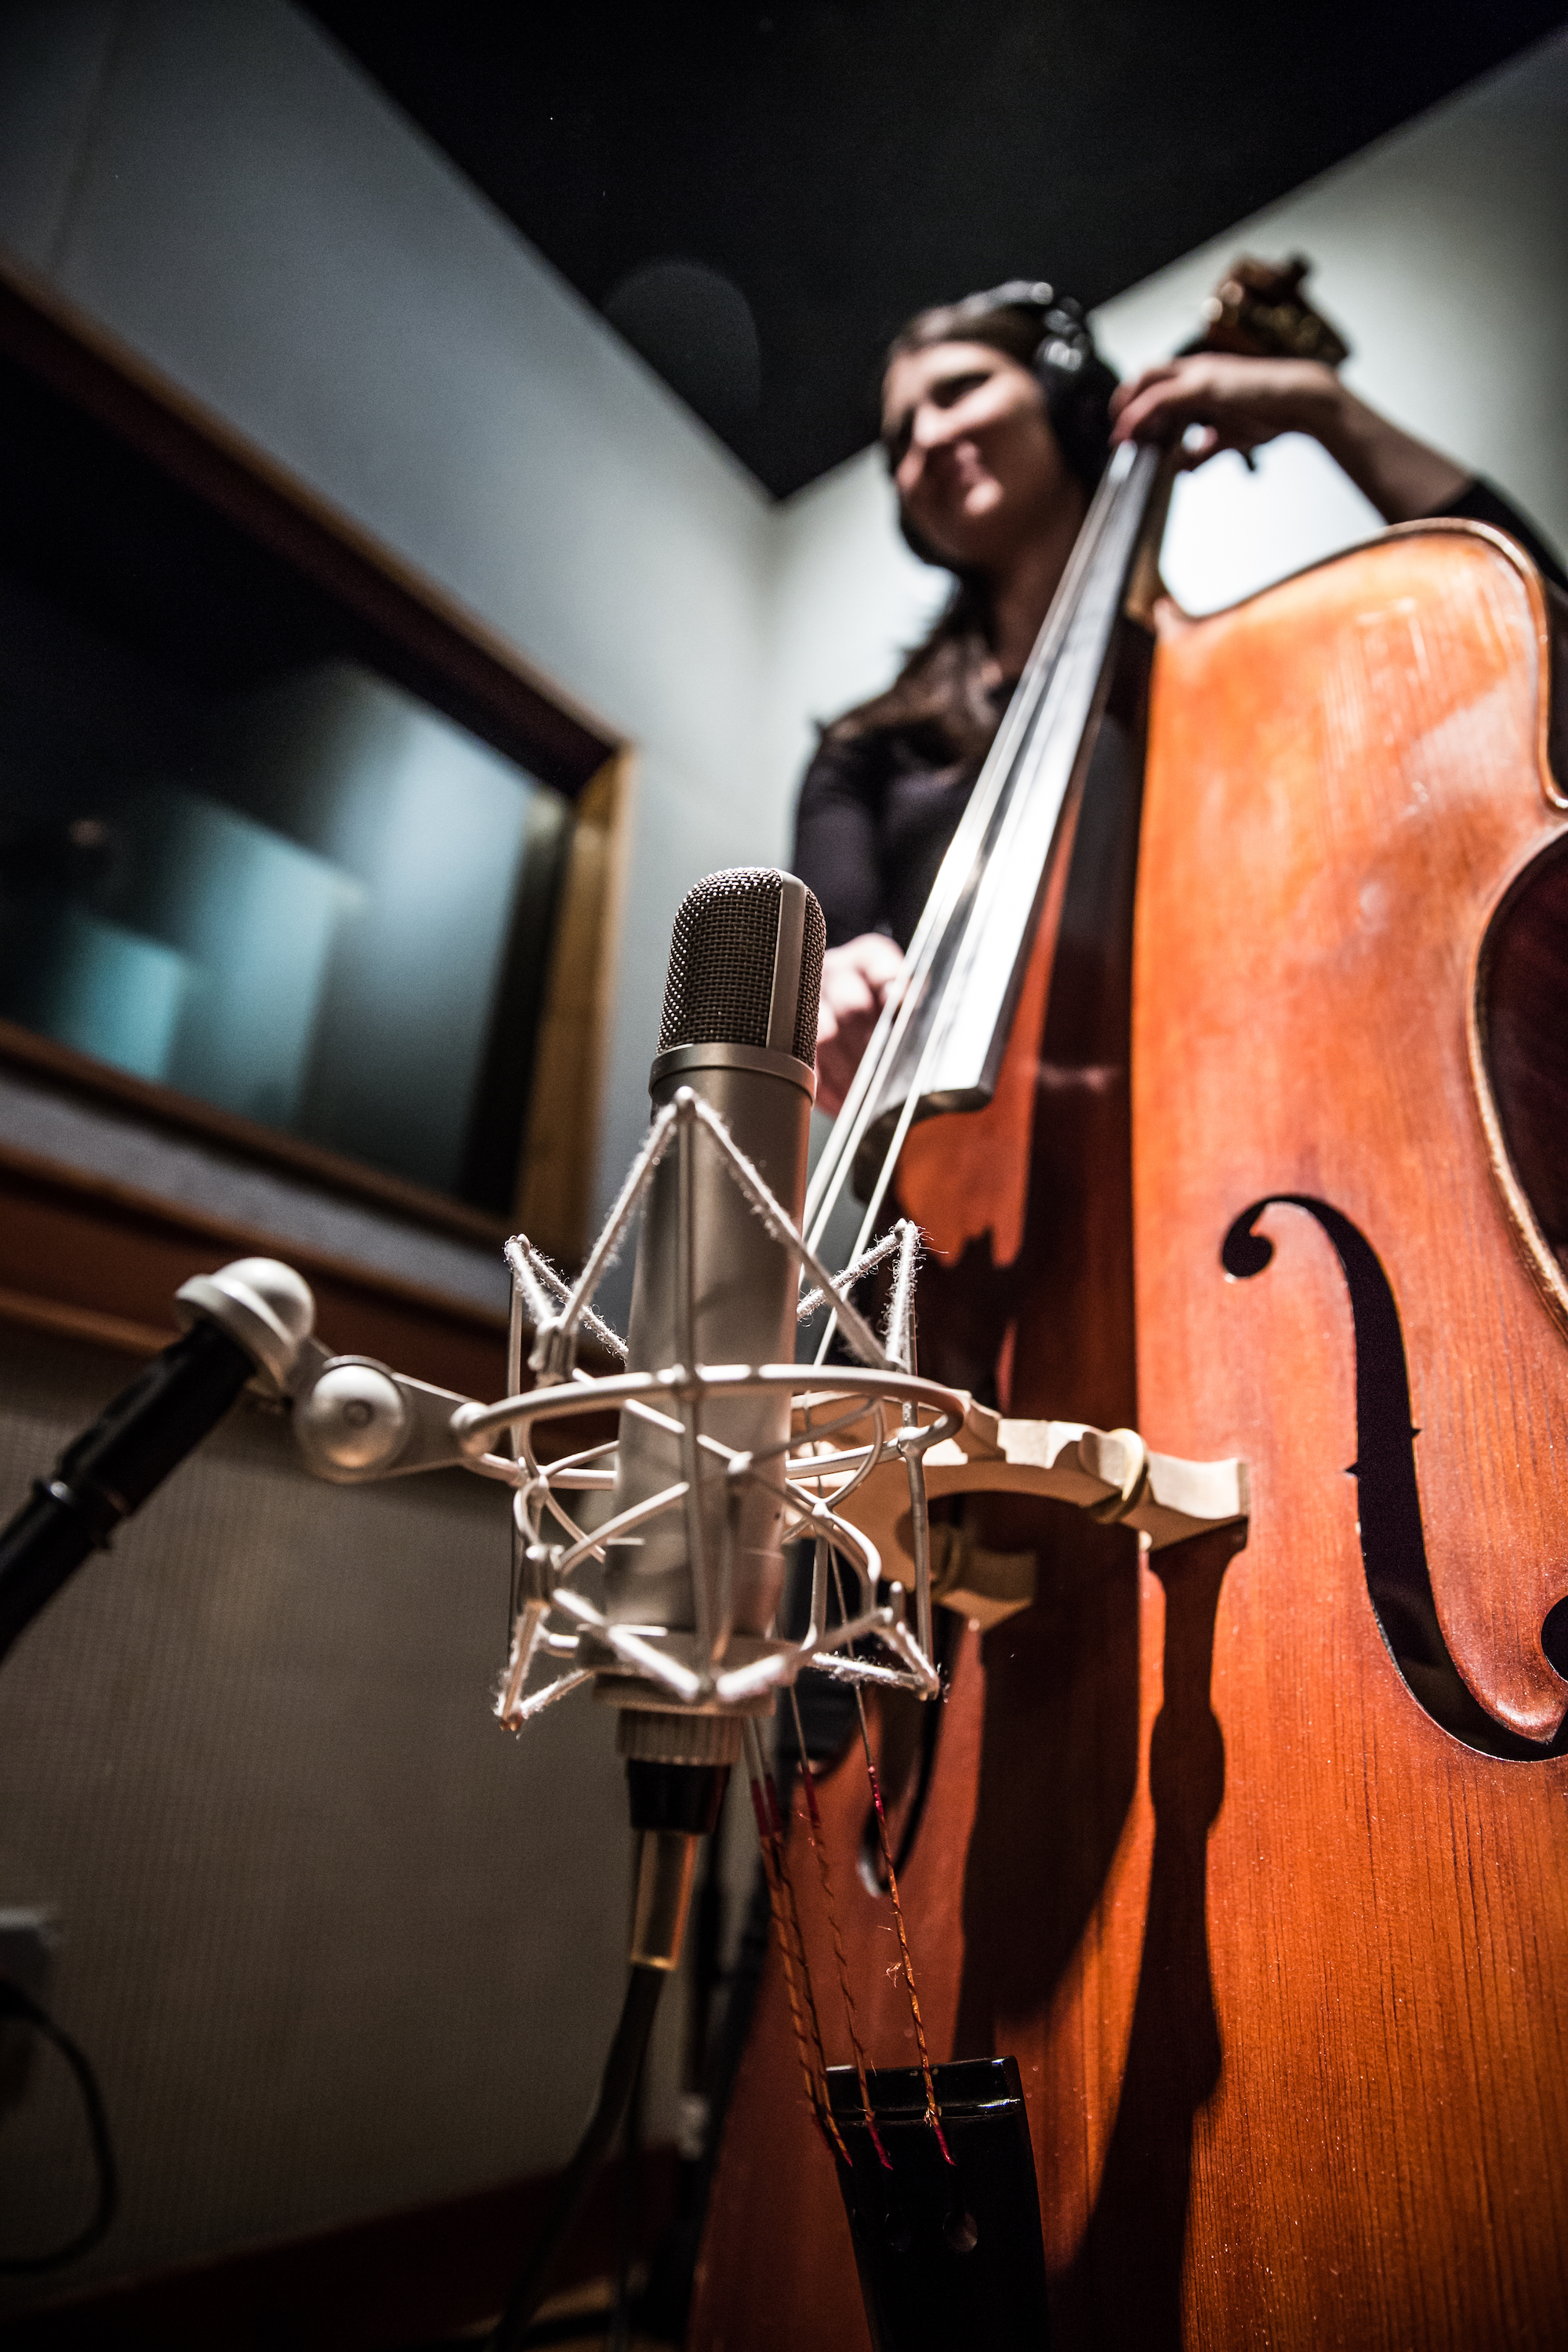 iso-recording-bass-color-2000x3000.jpg